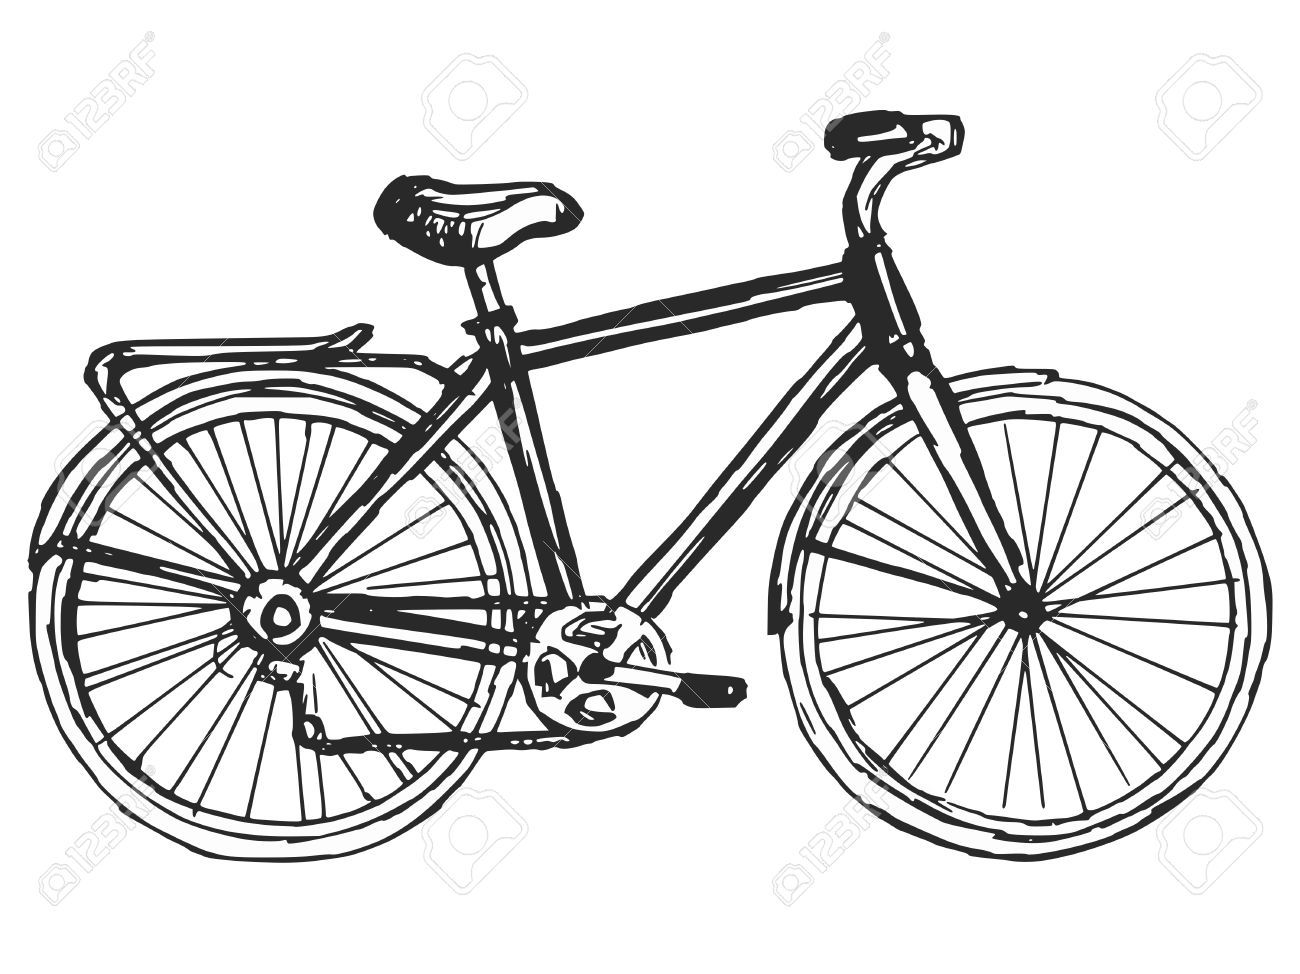 Bicycle clipart illustrated. Stock vector cards in